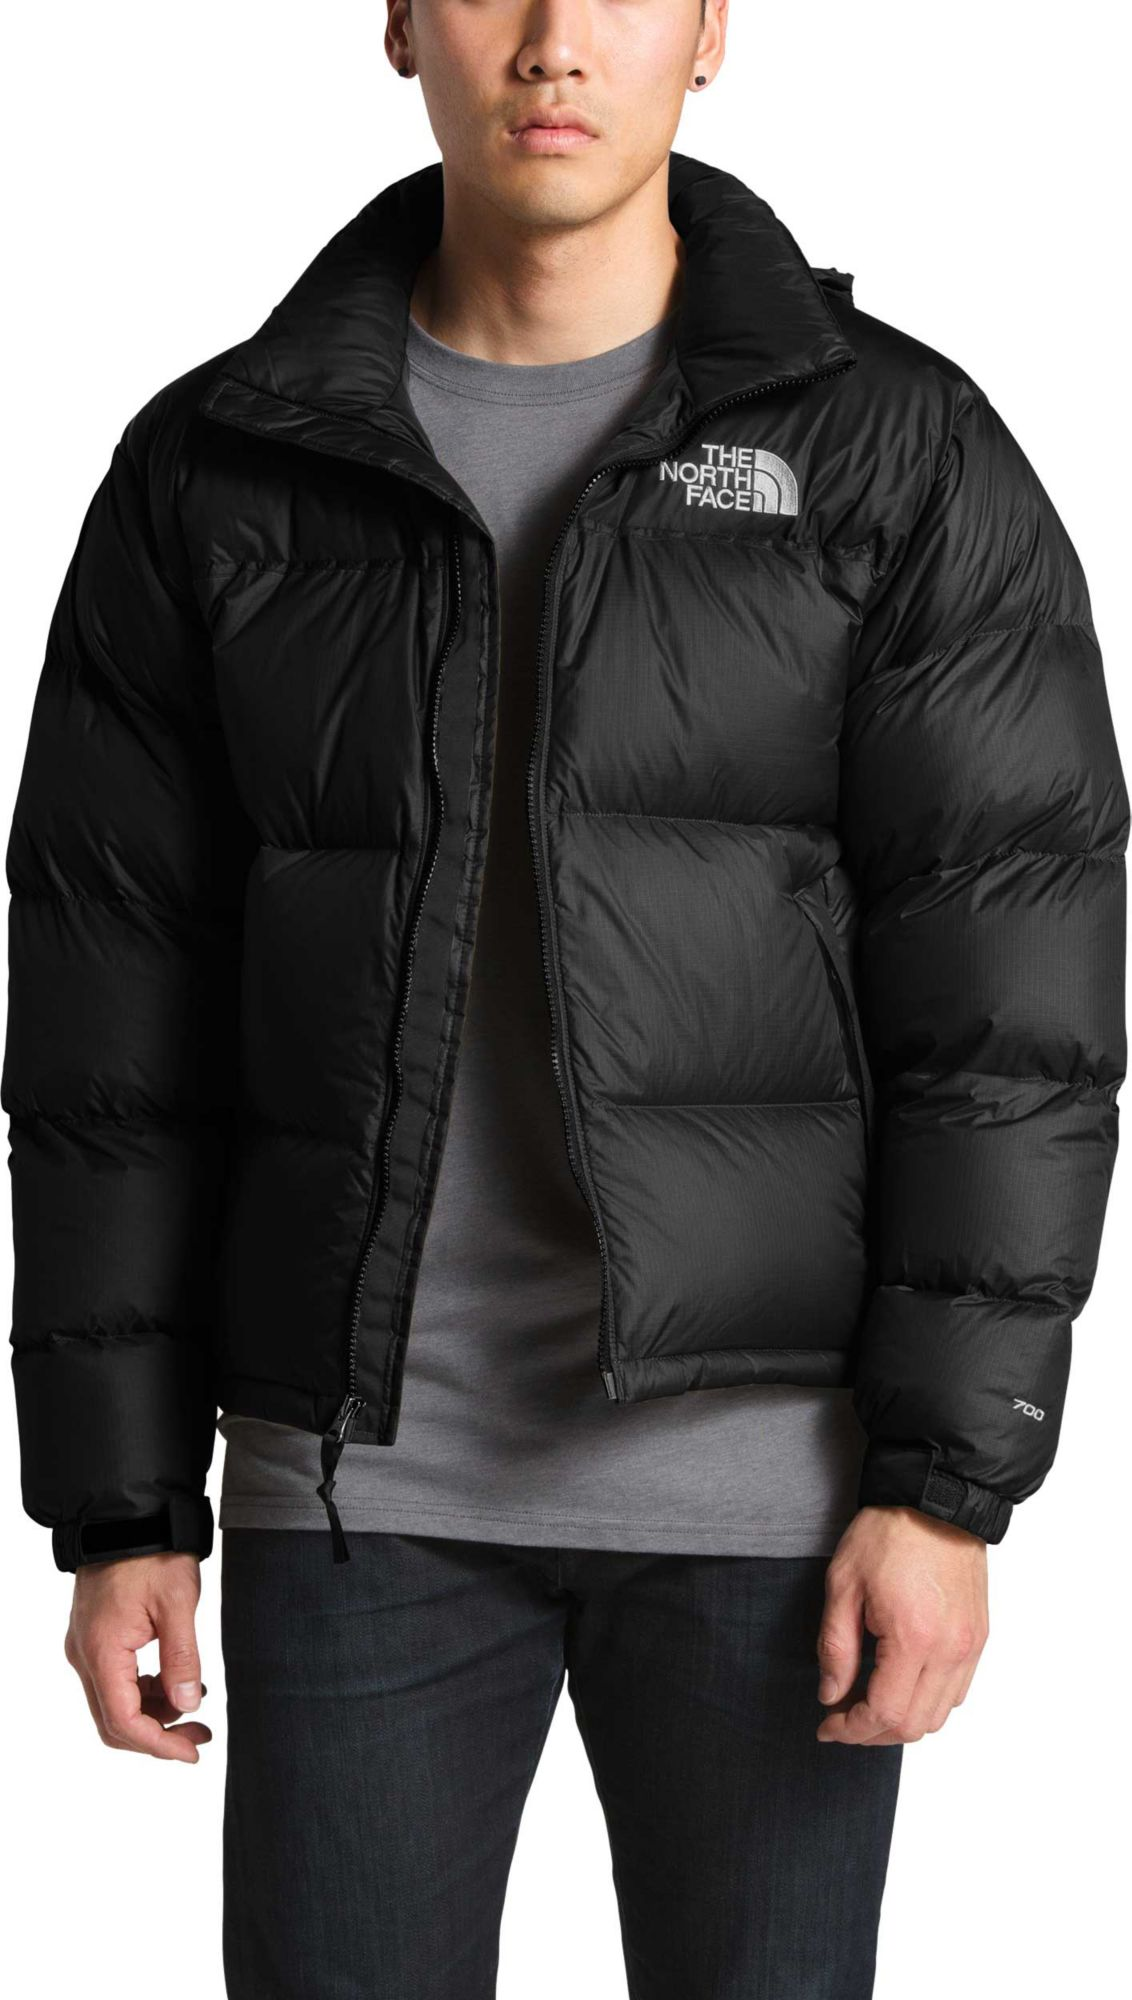 b62871bb94 The North Face Men's 1996 Retro Nuptse Jacket in 2019 | Products ...